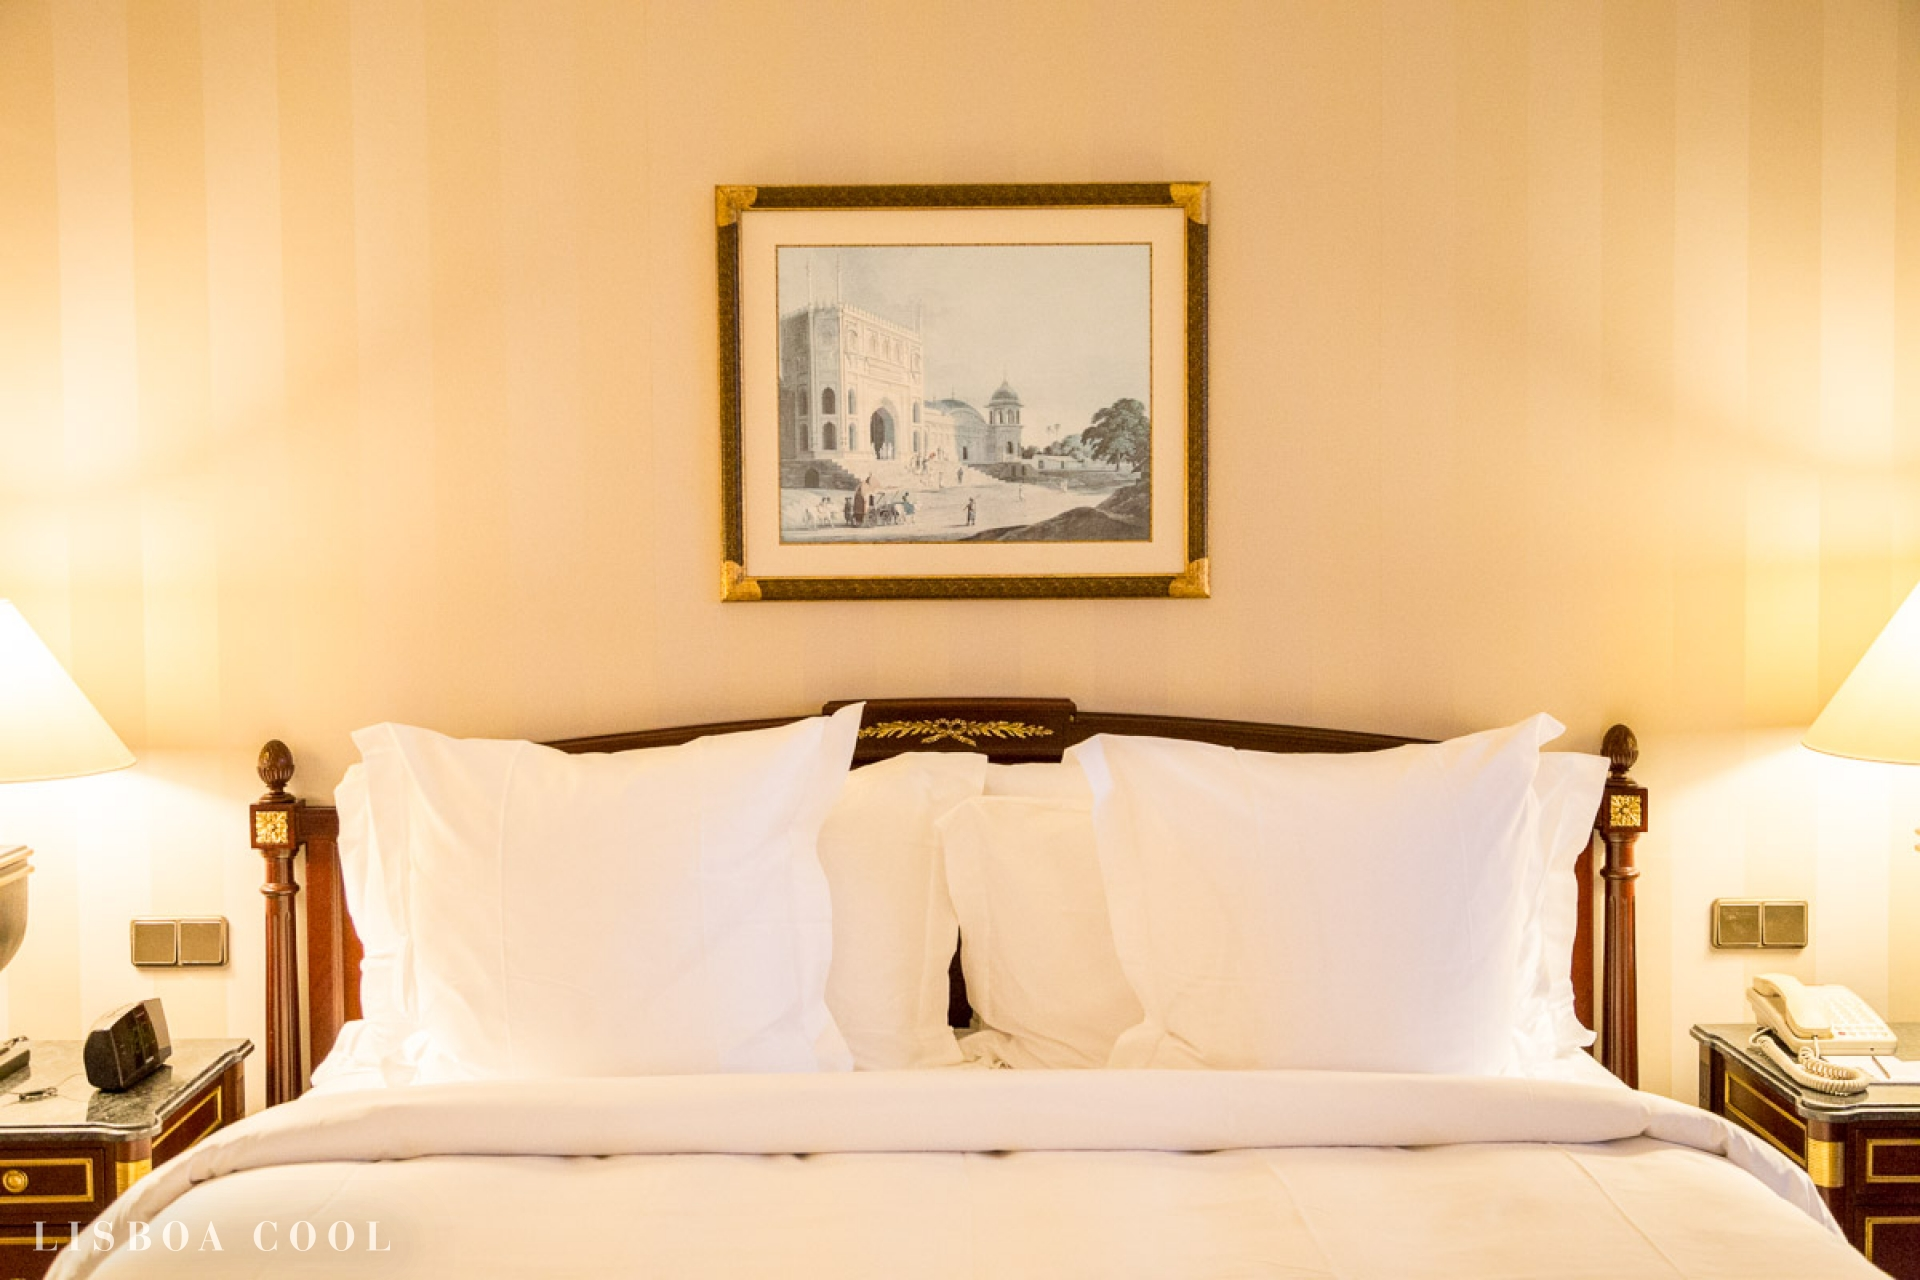 LisboaCool_Dormir_Hotel_Ritz_Four_Seasons_Lisboa